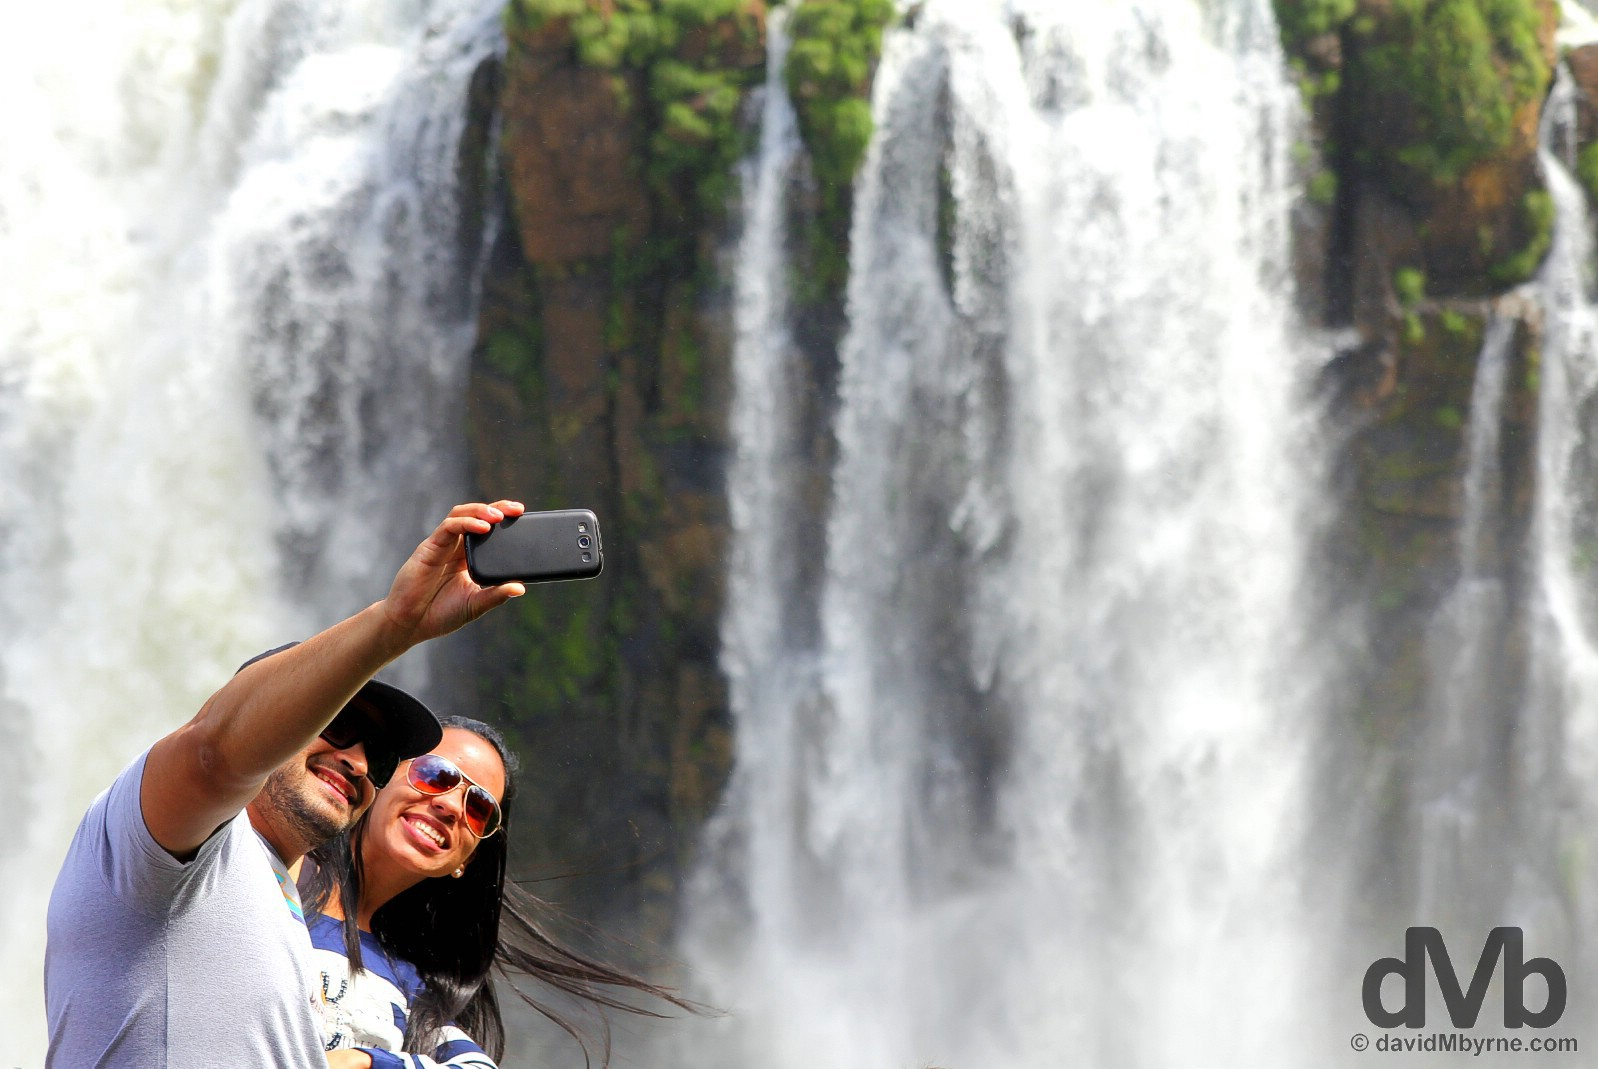 Couple selfie at Iguazu Falls in Parque Nacional Do Iguacu, Brazil. September 12, 2015.